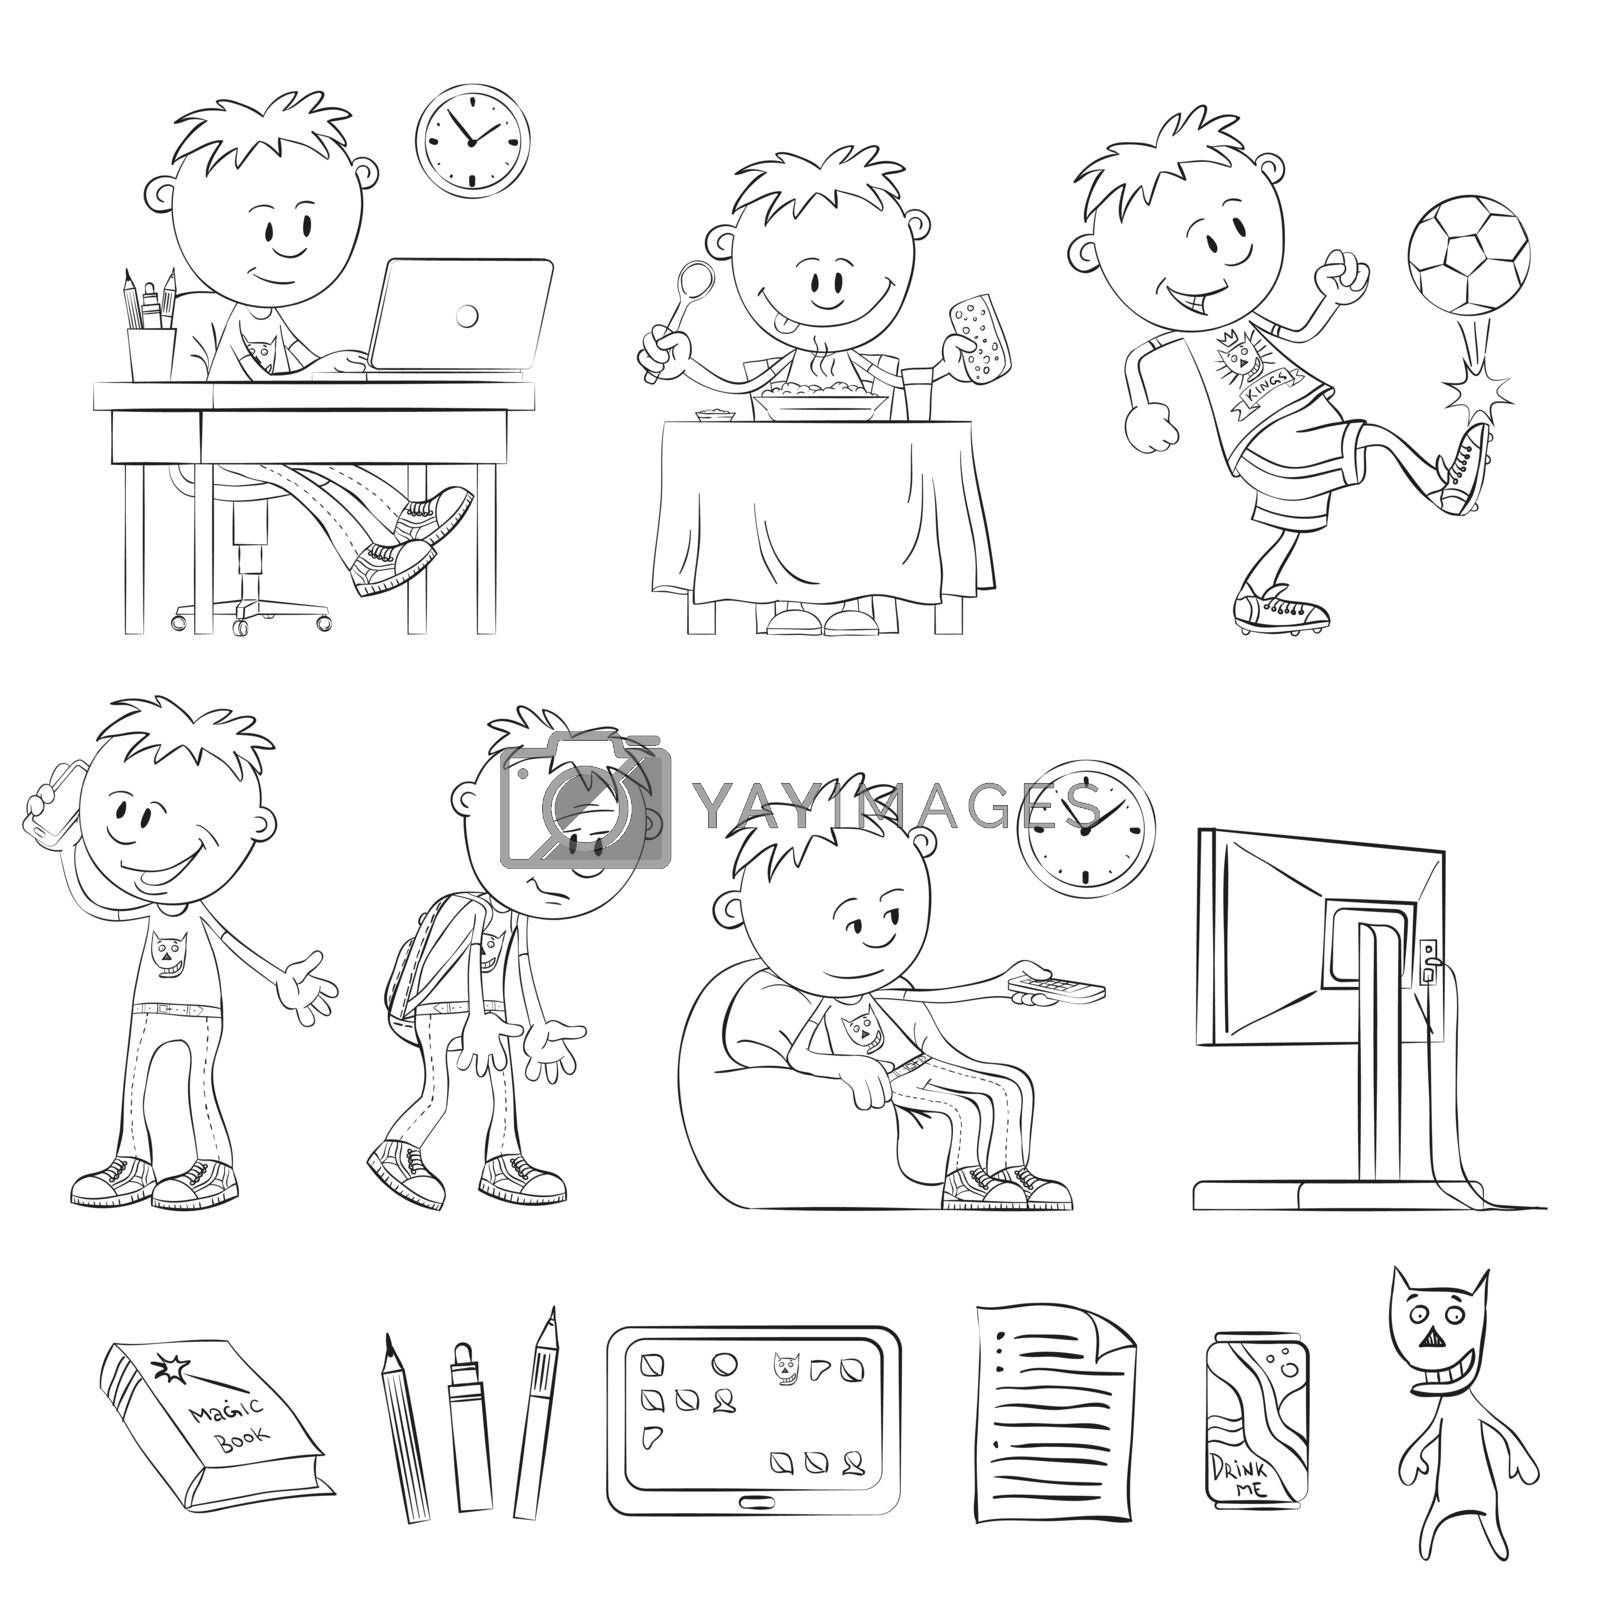 What does a teenager - outline drawings. Teenager working with a laptop. Boy having breakfast. Boy playing soccer. Teenager calling on the phone. Tired boy. Boy watching TV. Items teenager.